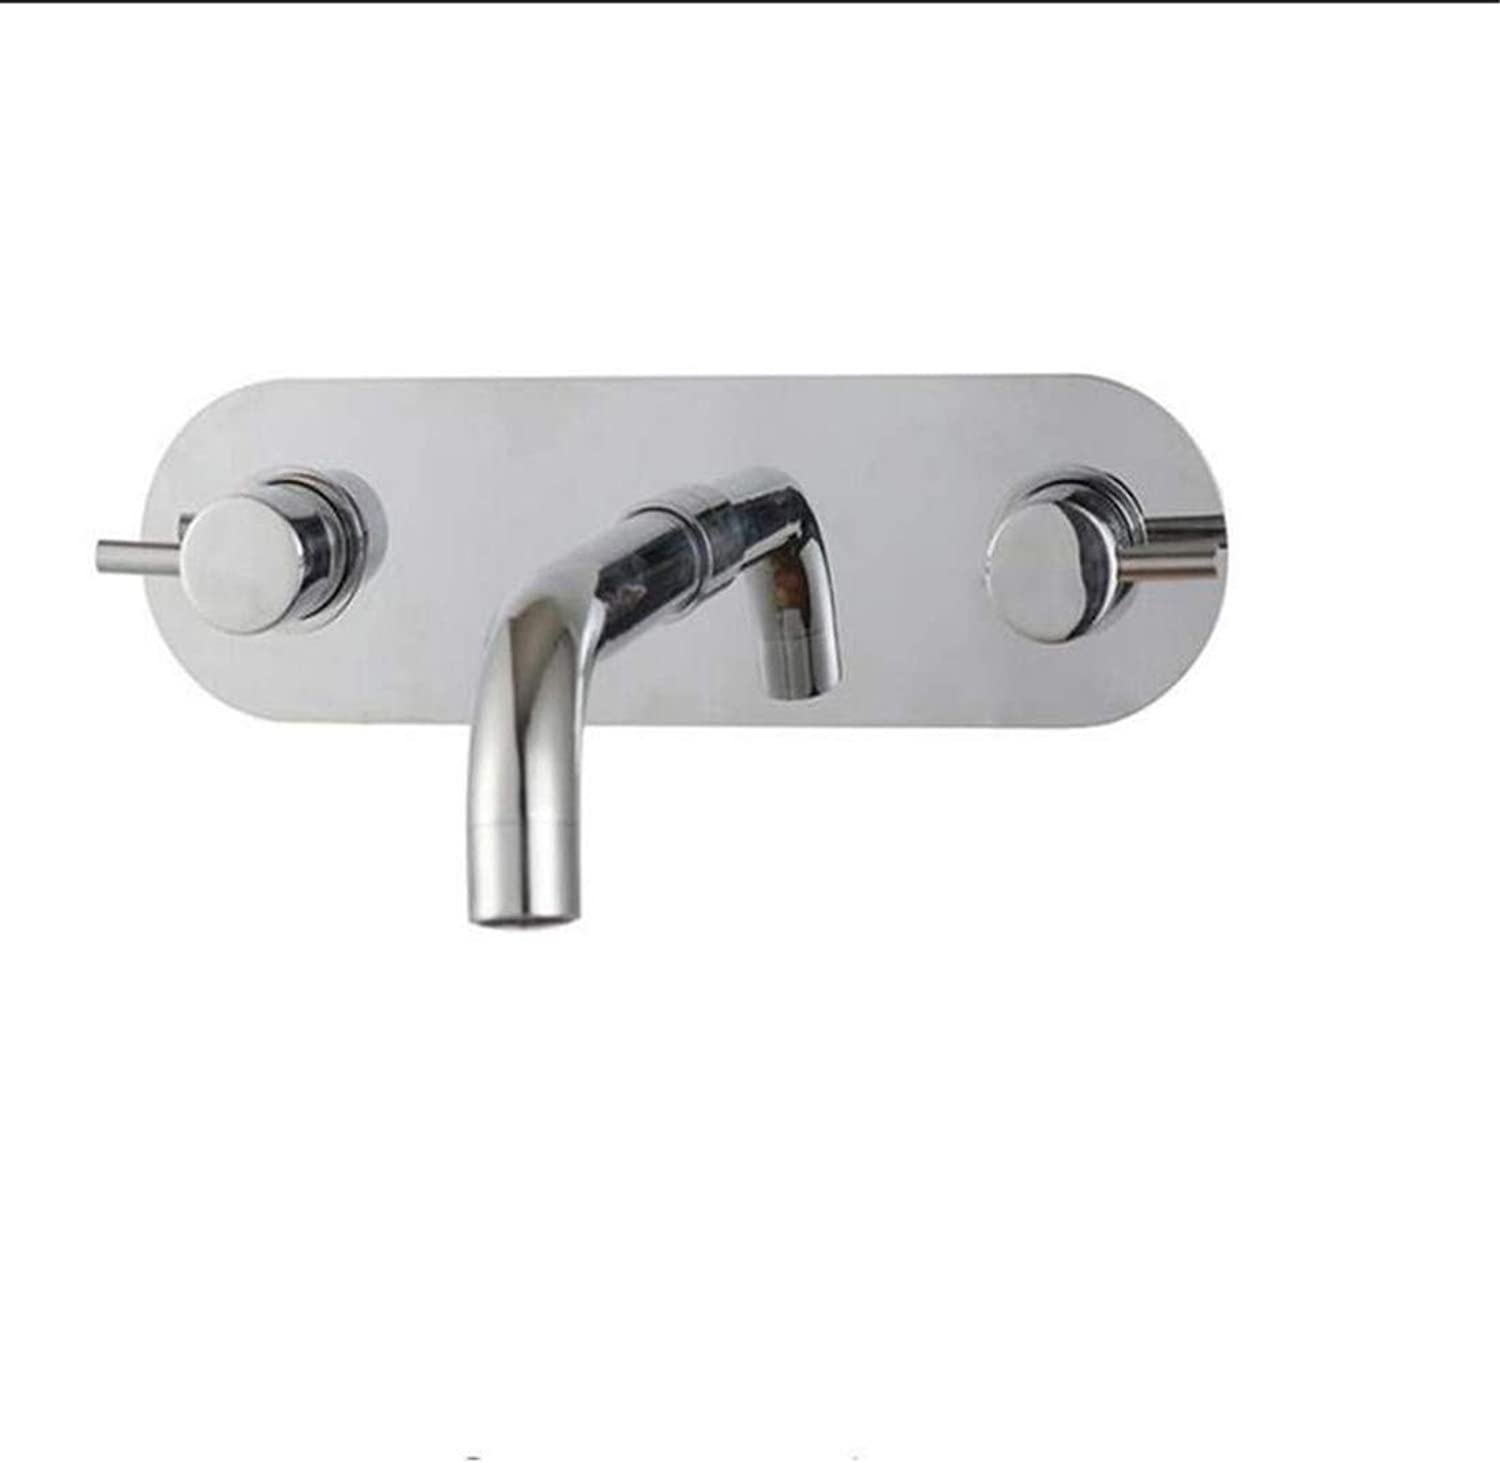 Retro Hot and Cold Faucet Vintage Platingfaucets Basin Mixer Widespread Contemporary Bathroom Sink Sanitary Wall Mount Faucet Mixer Tap